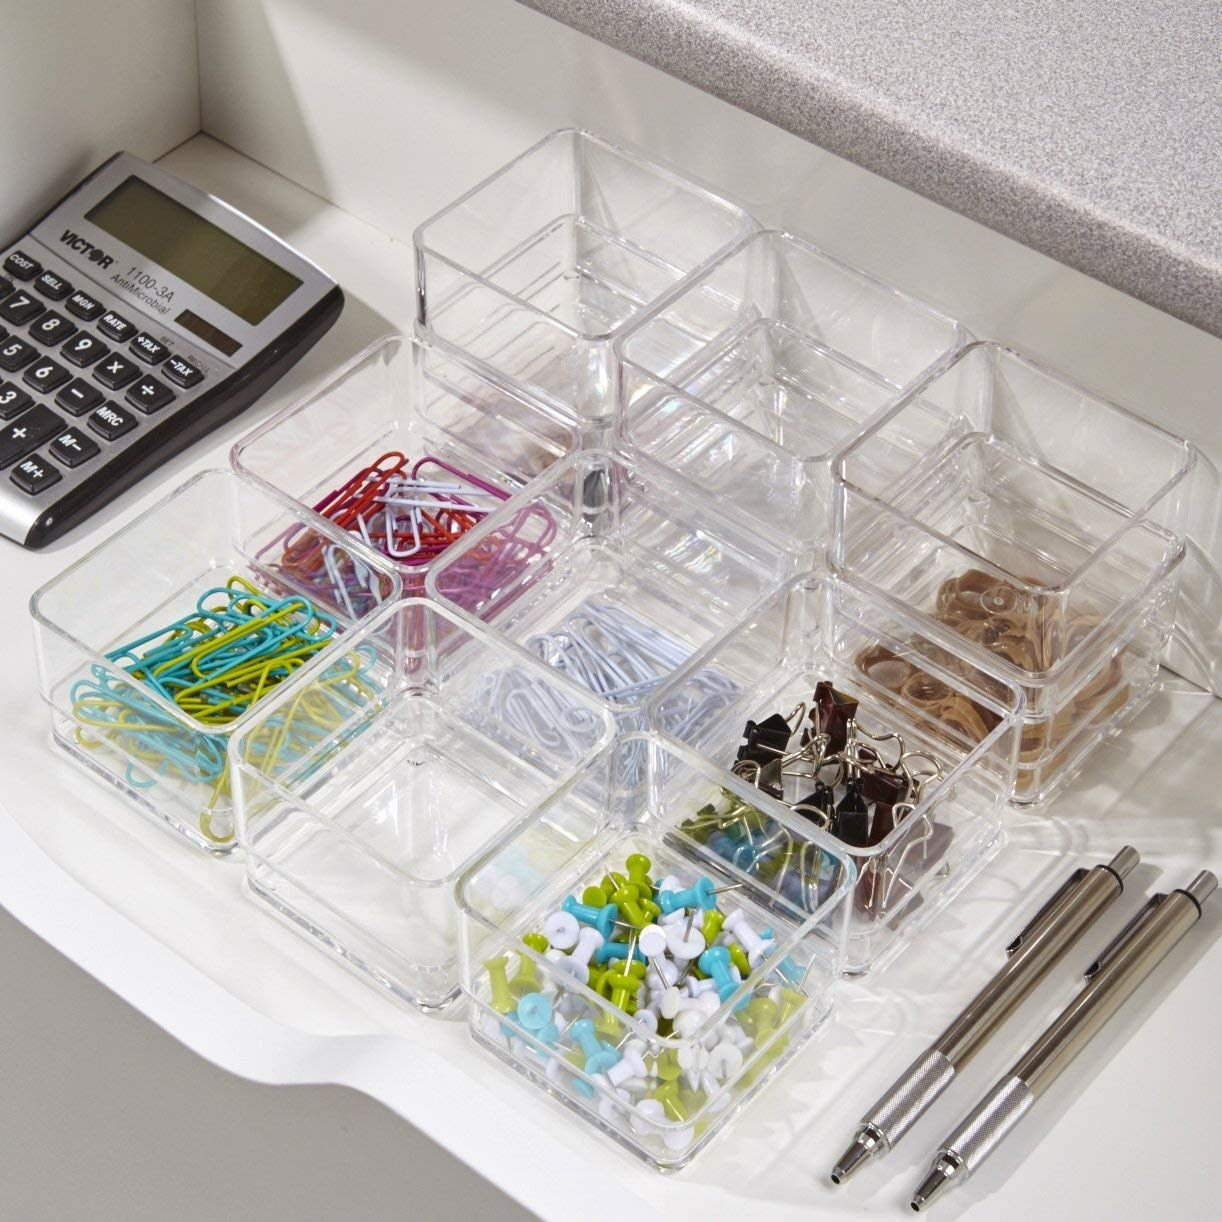 The cubes holding office supplies like push pins and paper clips